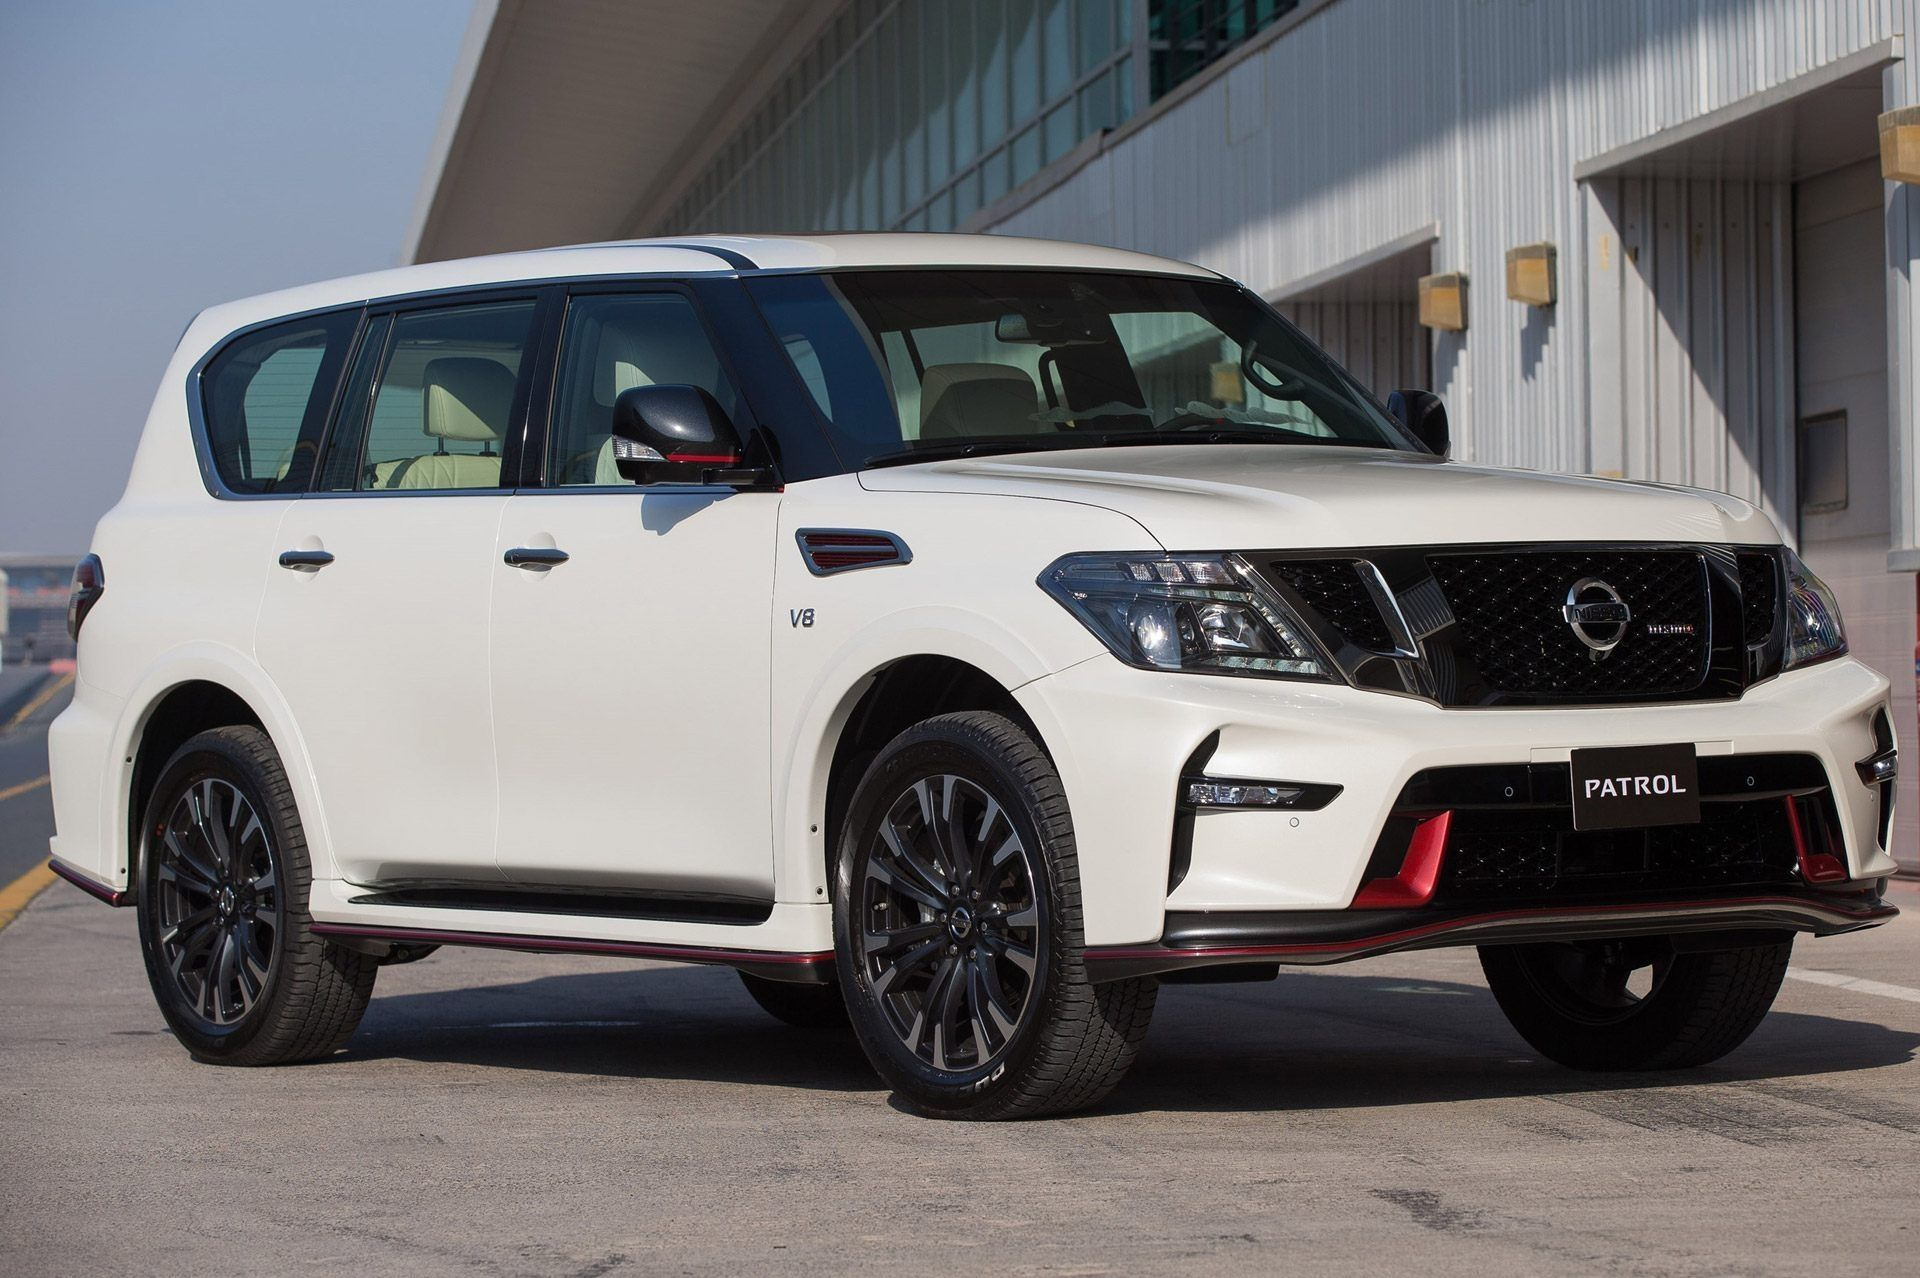 Best 2020 Nissan Patrol Redesign Price And Review Car Price 2019 Nissan Patrol Suv Nissan